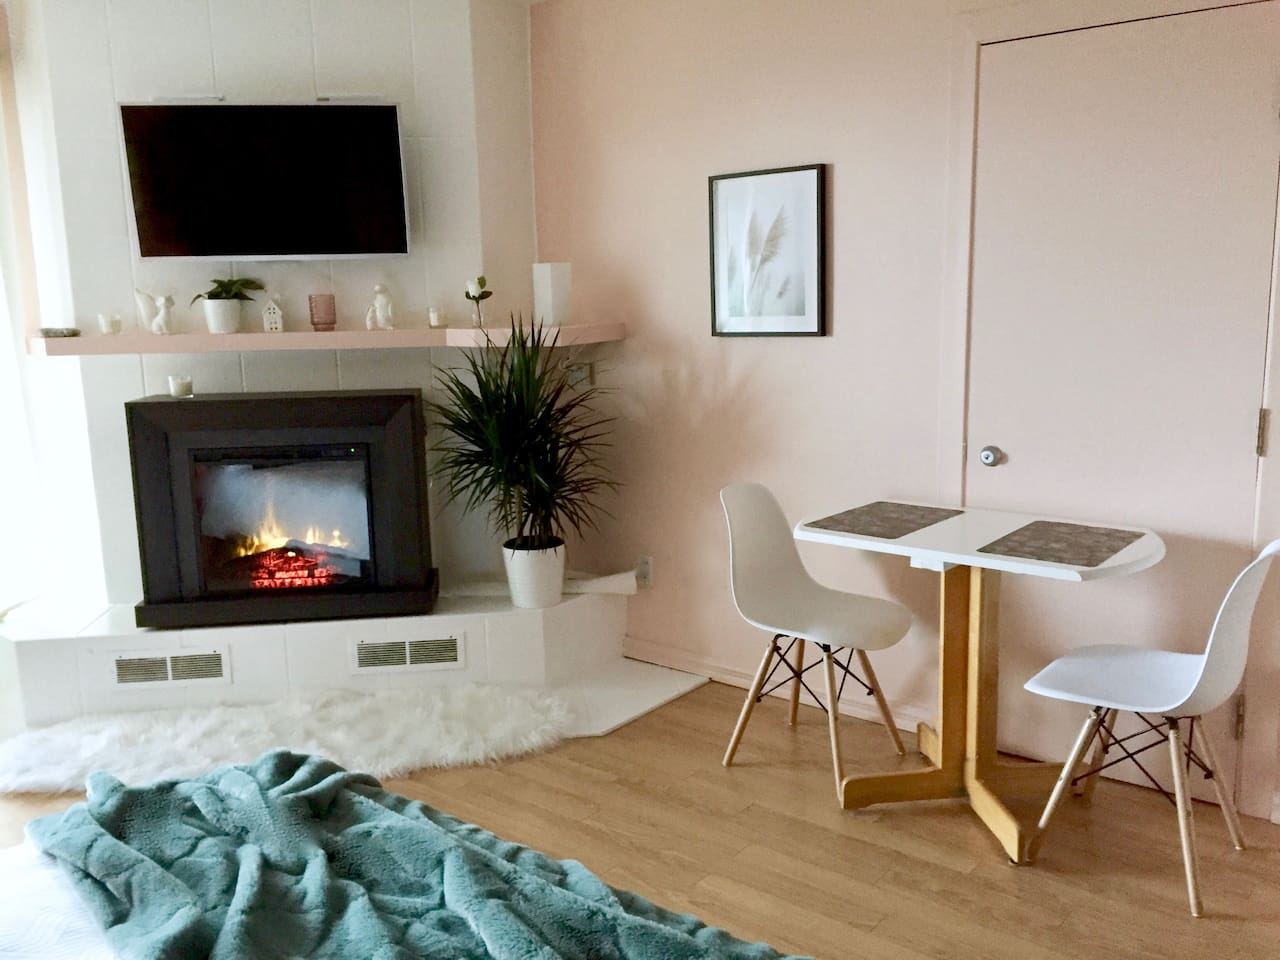 Studio Apartment With Electric Fireplace Smart TV Netflix, Youtube, Wifi, Fully Kitchen and Free Parking.